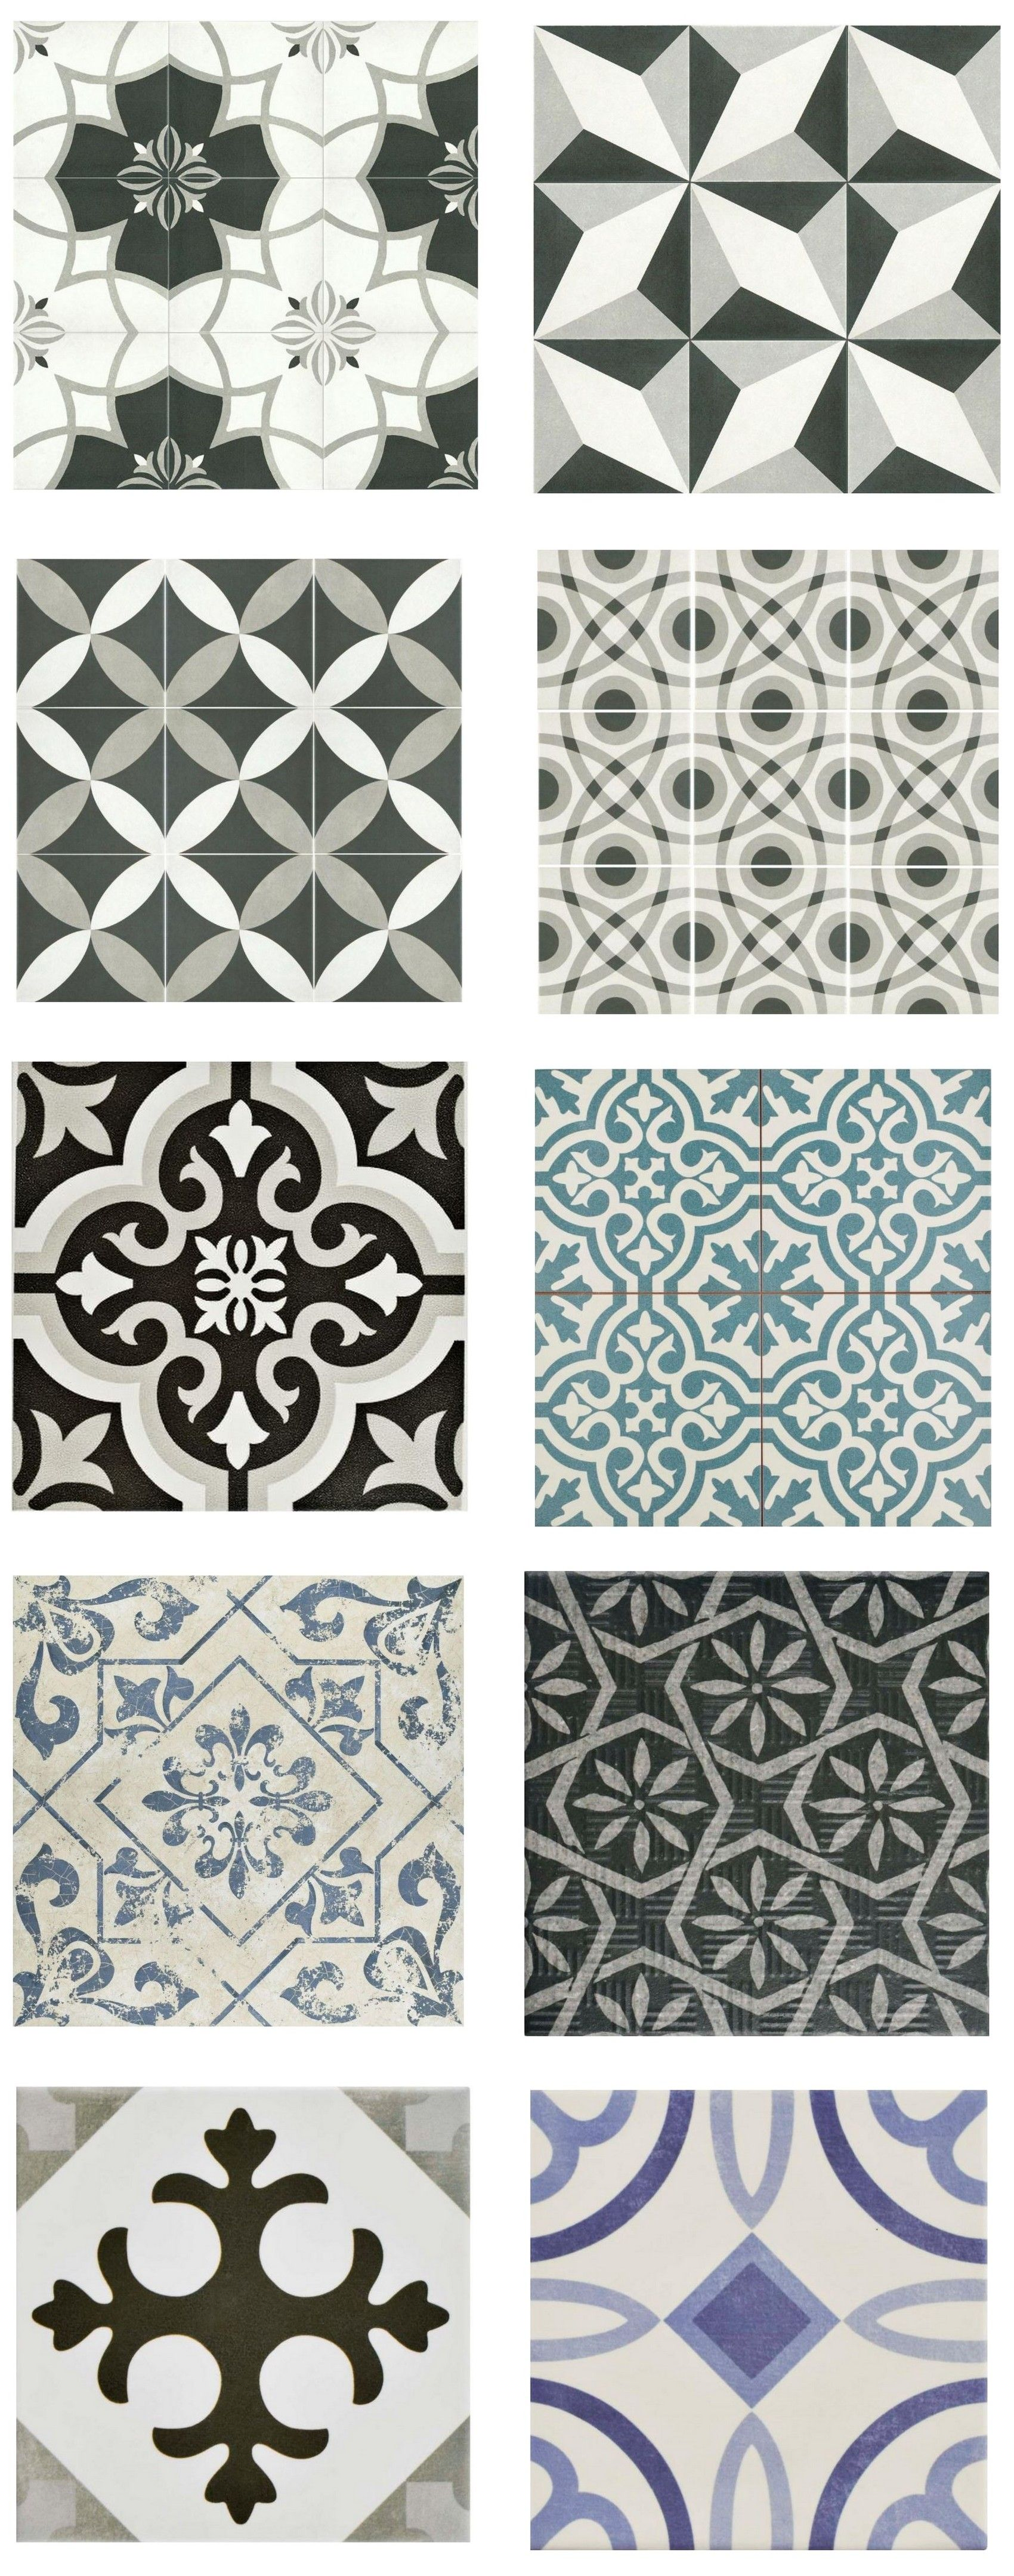 Cement look tile for less centsational girl textury pinterest cement look tile home depot porcelain and ceramic tiles that look like authentic encaustic cement tiles but for less money than youd pay for the real dailygadgetfo Image collections